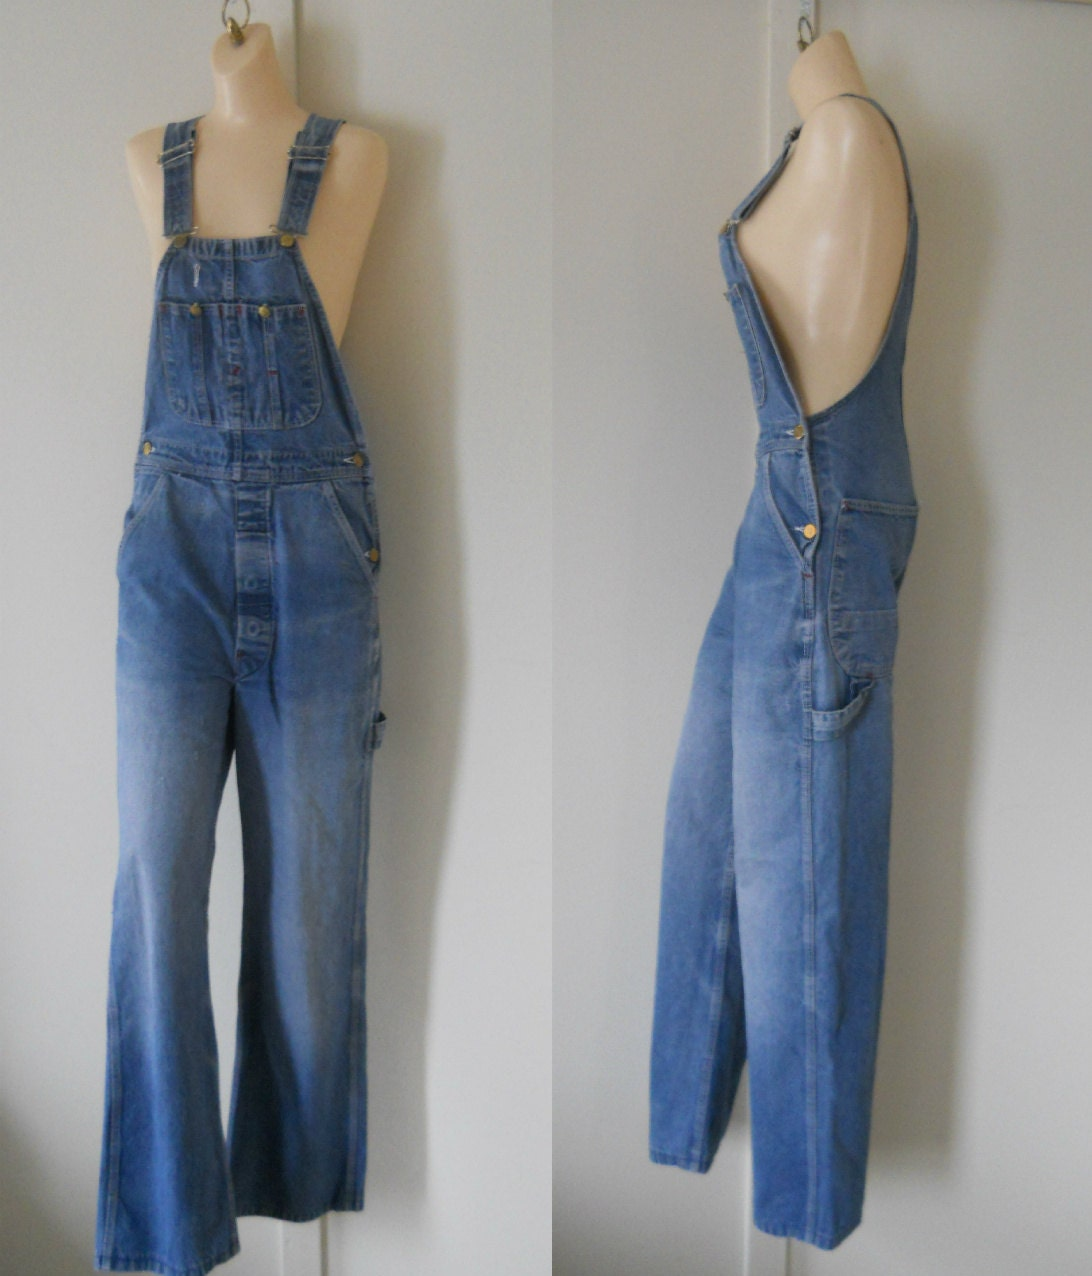 Jean rompers with elasticized waists are comfortable for kids and adults alike. Denim overalls for women have become a staple piece and the versatility they bring has made them a fast-favorite. Find an array of overall styles available in this selection at Gap.